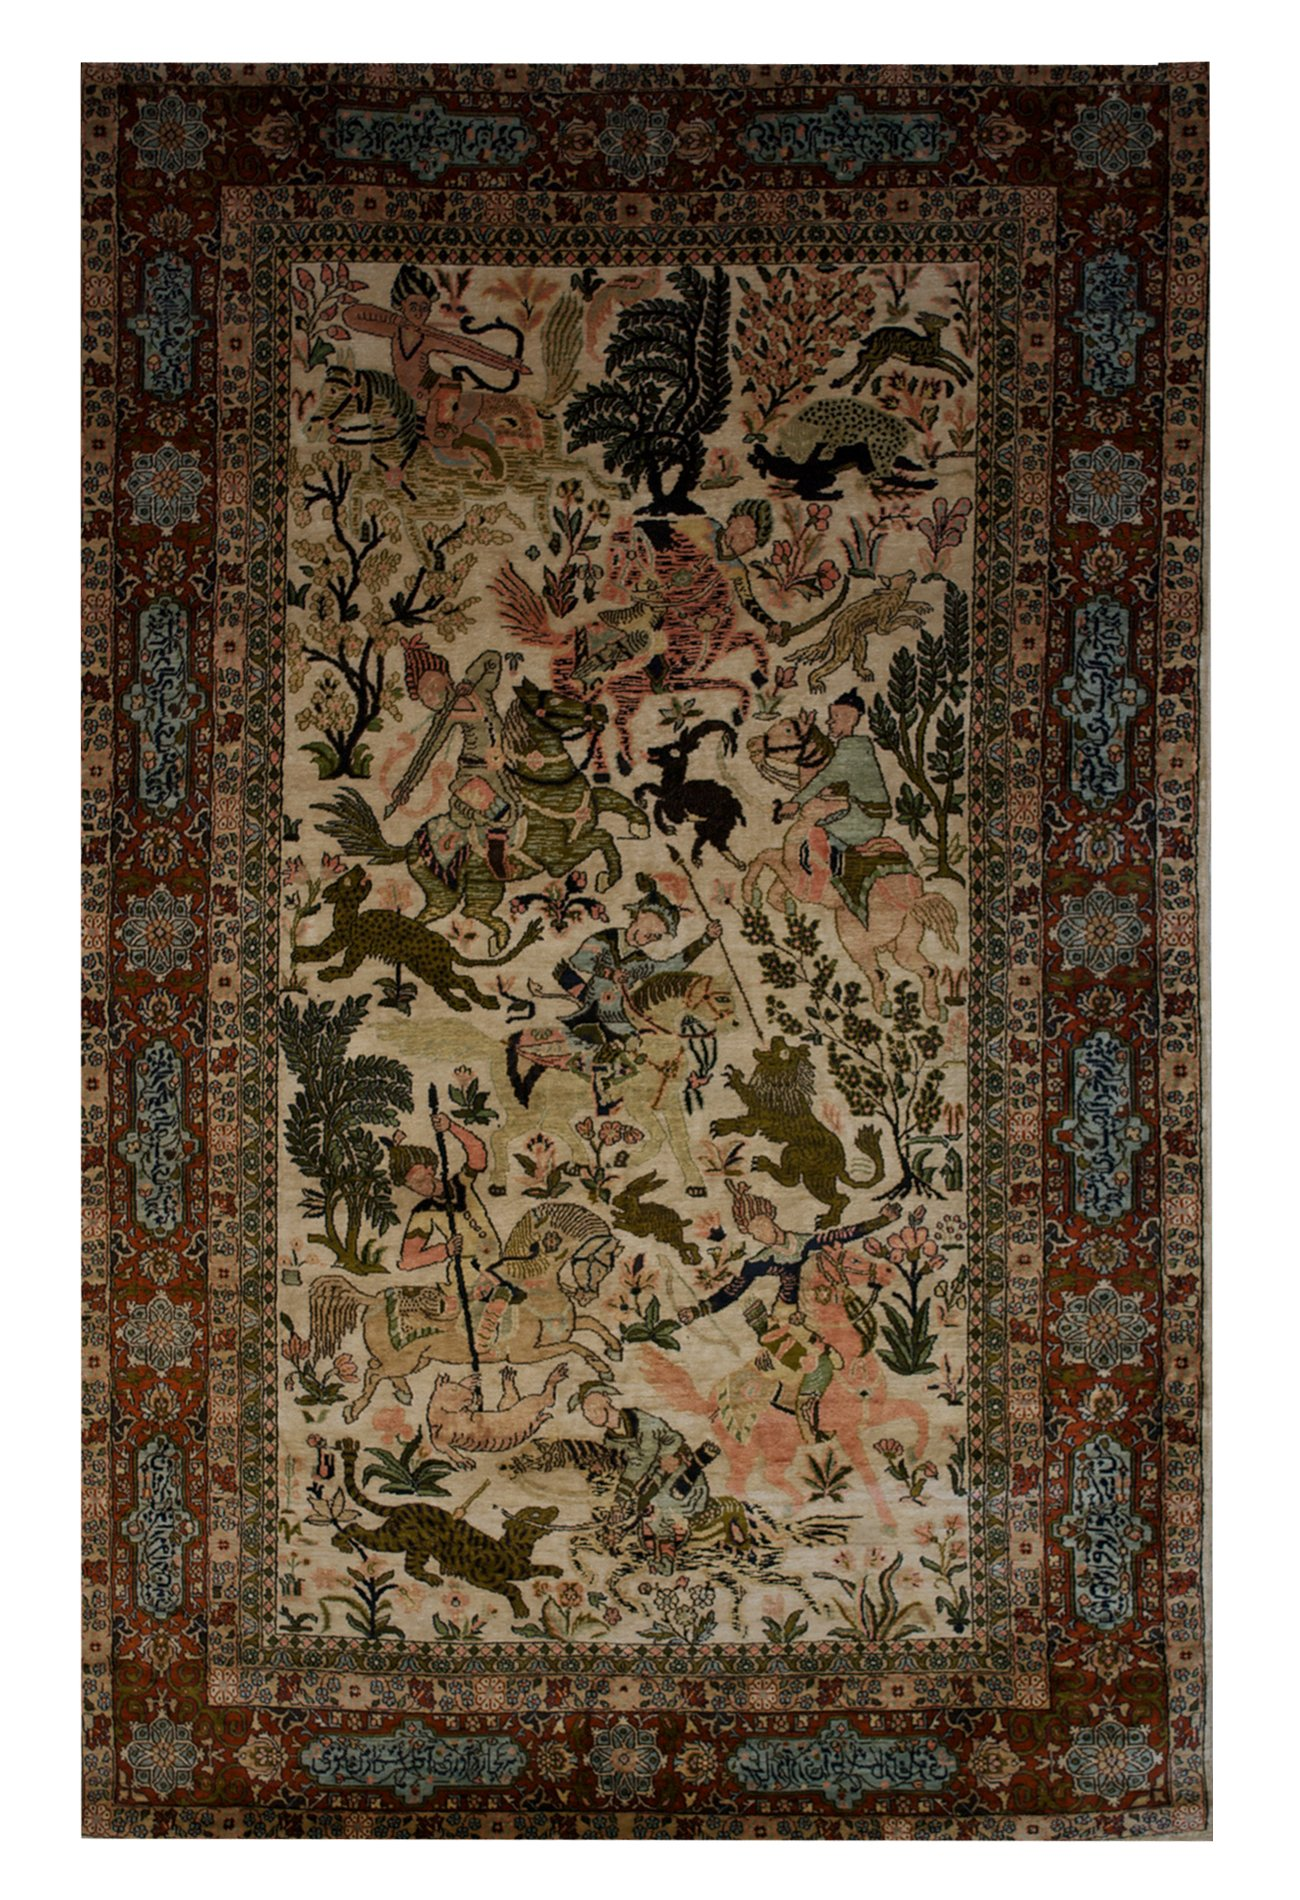 "Tabriz Hunting Scene 4' 6"" x 7' 2"" - Shabahang Royal Carpet"